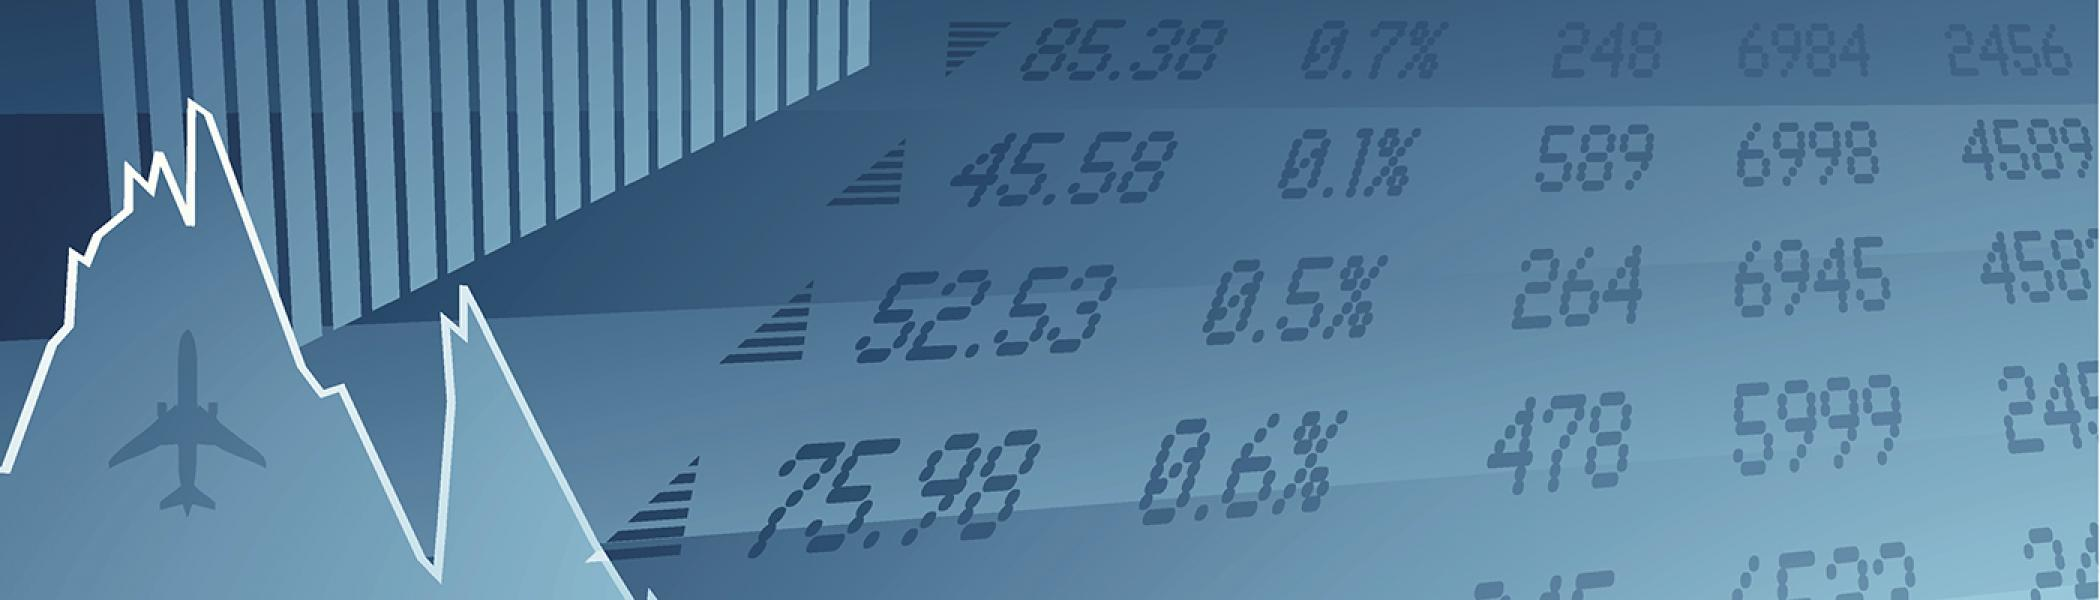 Stock ticker on blue background with stock chart and airplane in bottom left corner